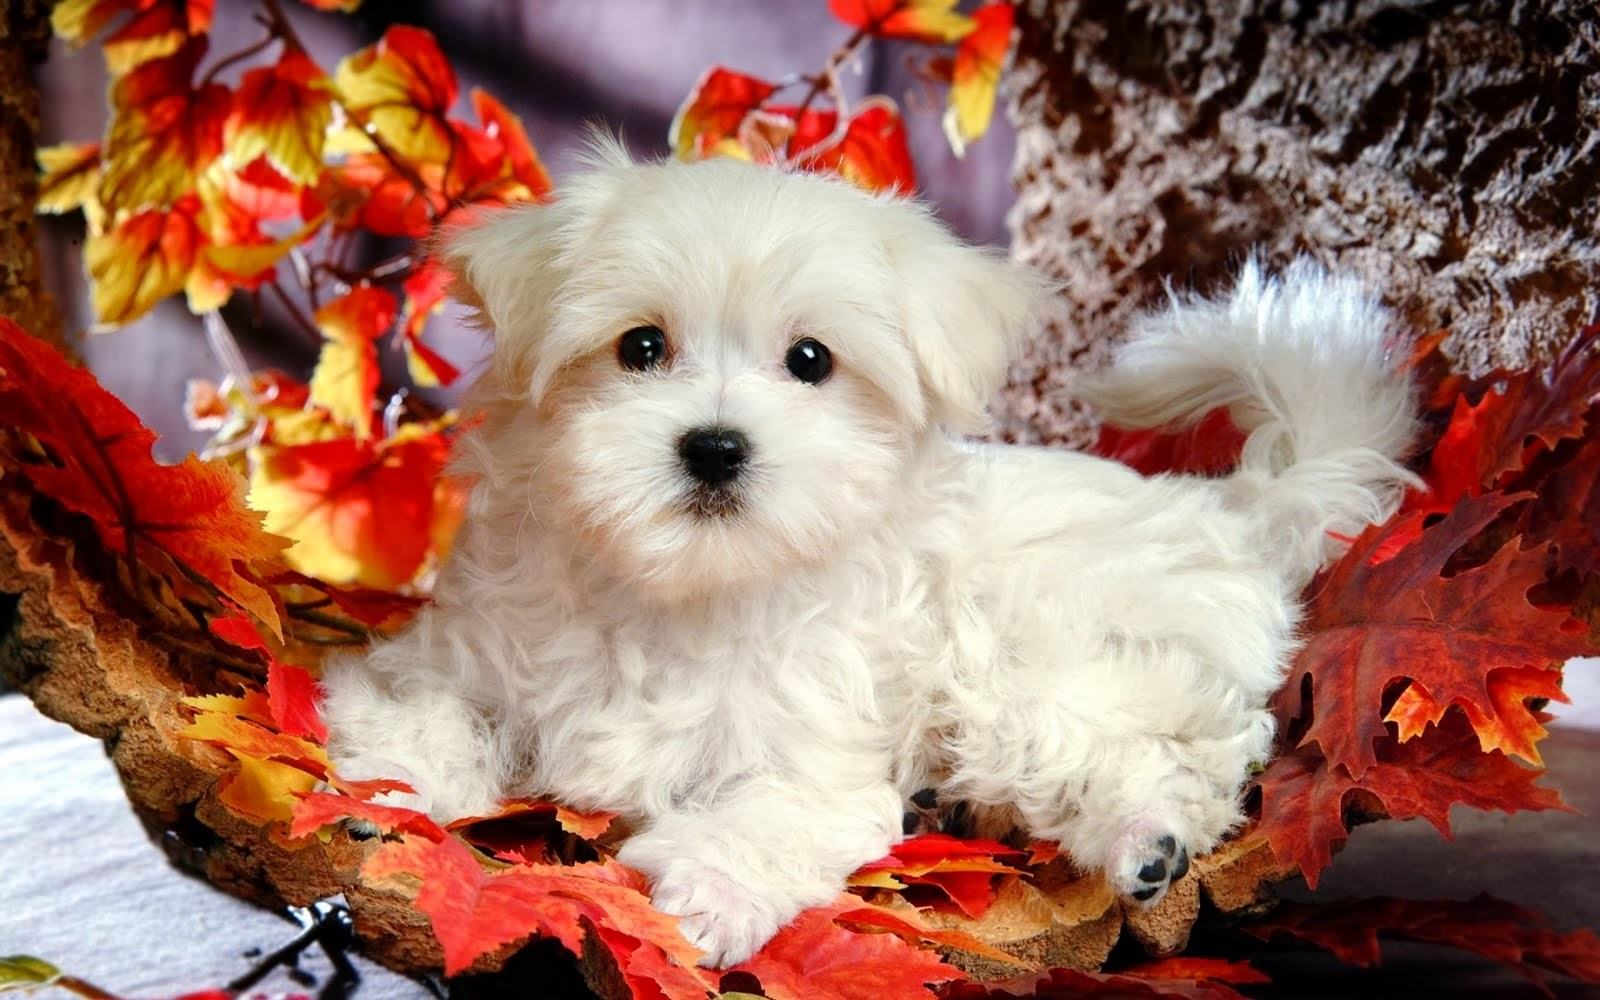 Beautiful Cute Puppies Wallpapers Cute White Puppy Wallpaper Desktop 1600x1000 Download Hd Wallpaper Wallpapertip